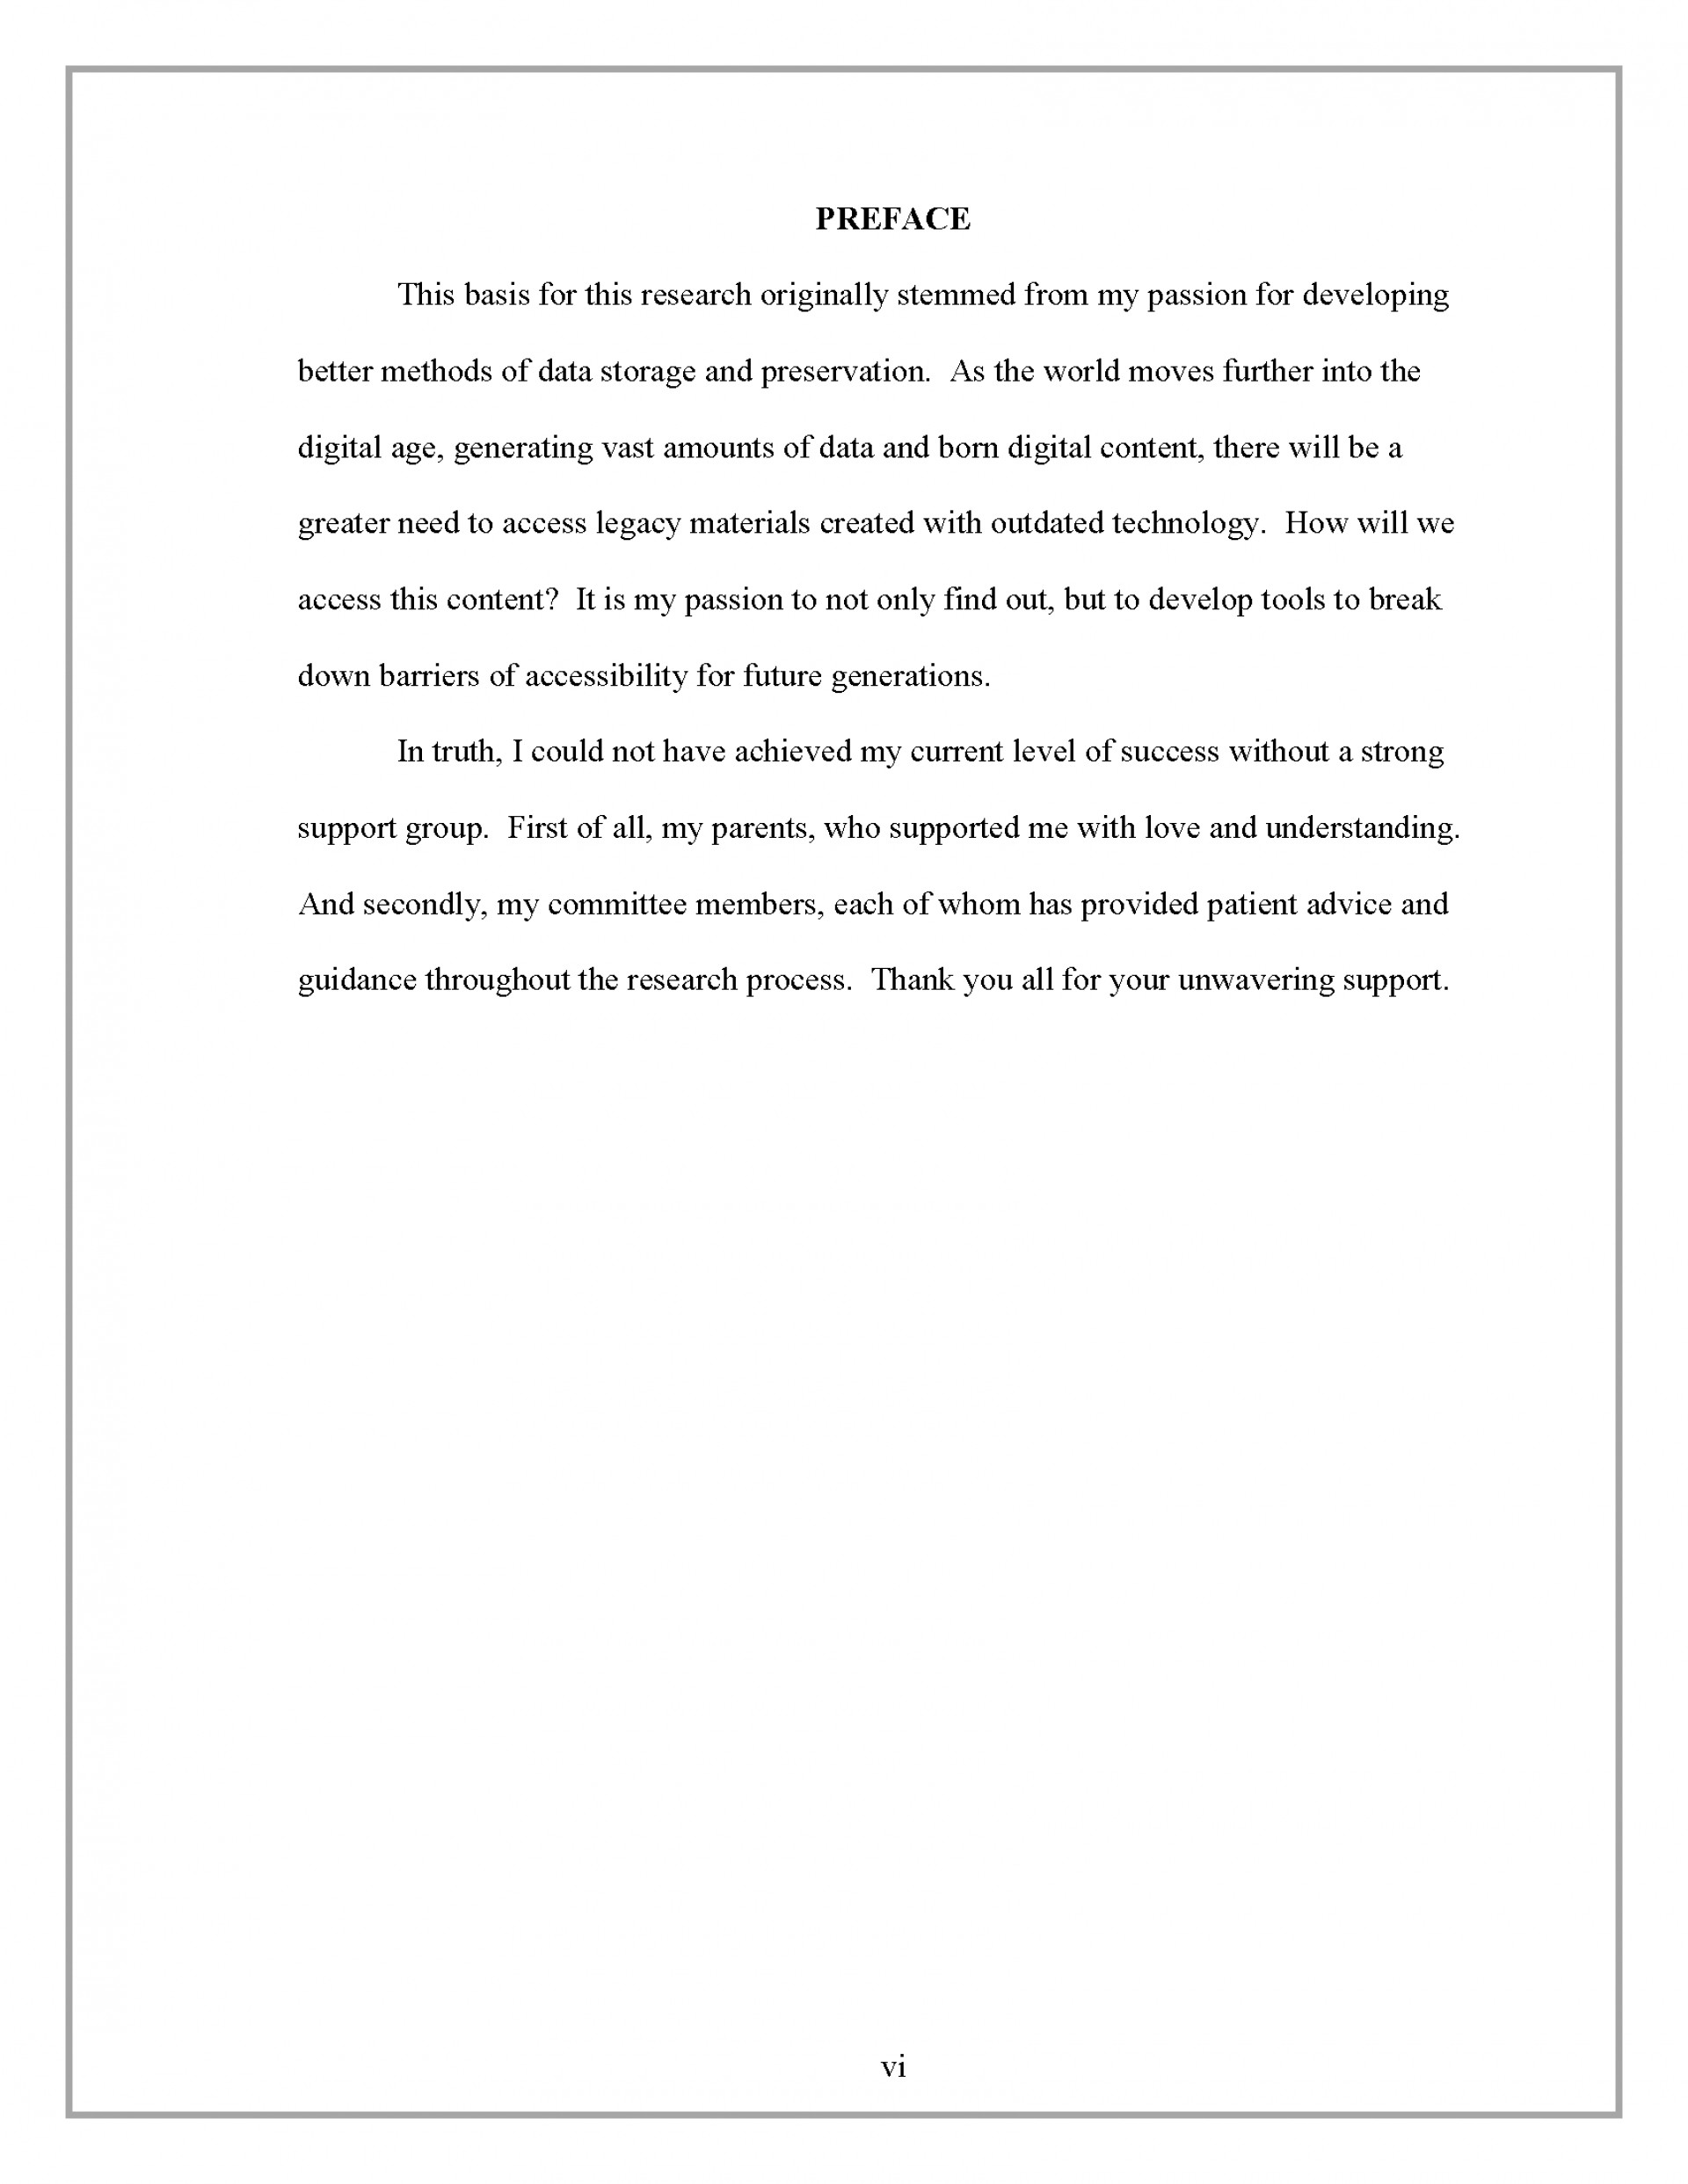 020 Thesis Statement For Compare And Contrast Essay Example Preface Border Shocking Generator How To Make A 1920